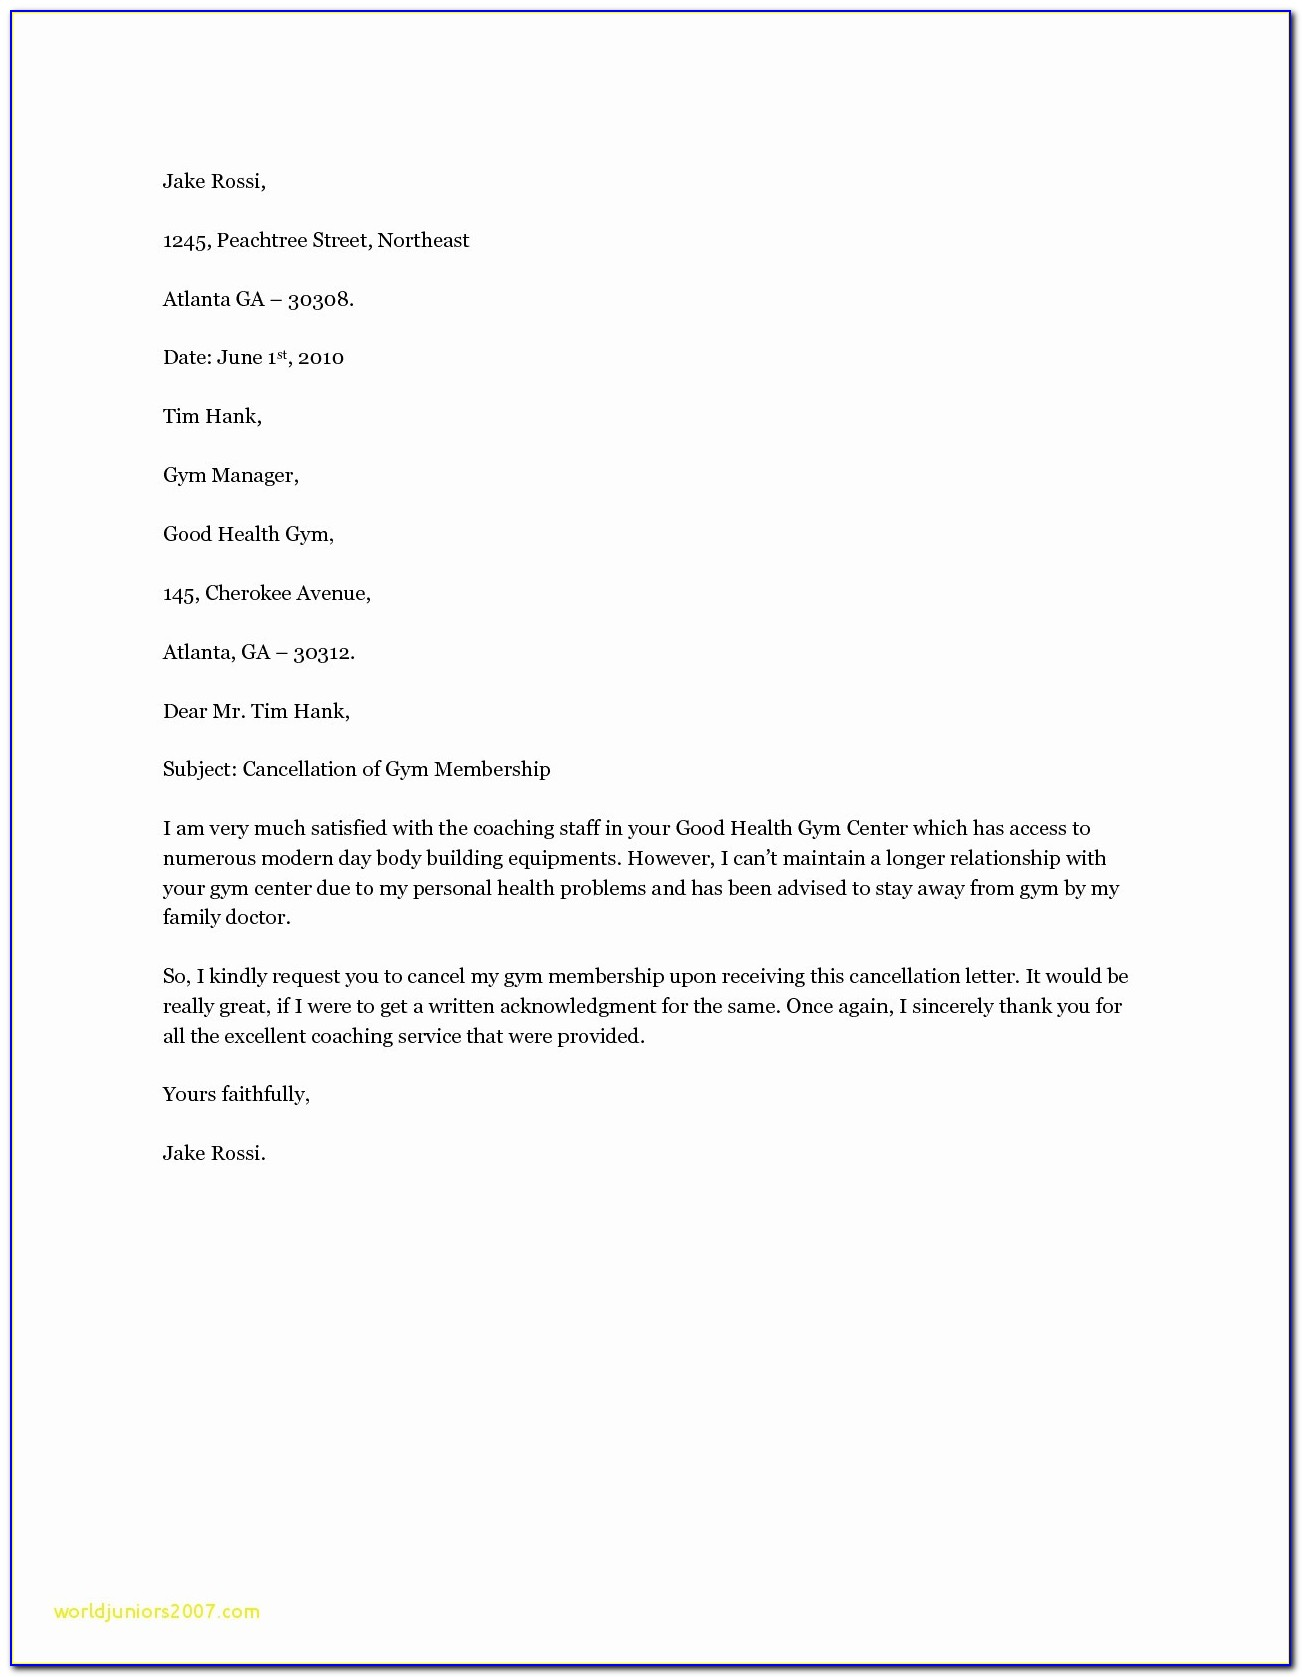 Gym Membership Cancellation Letter Template Uk